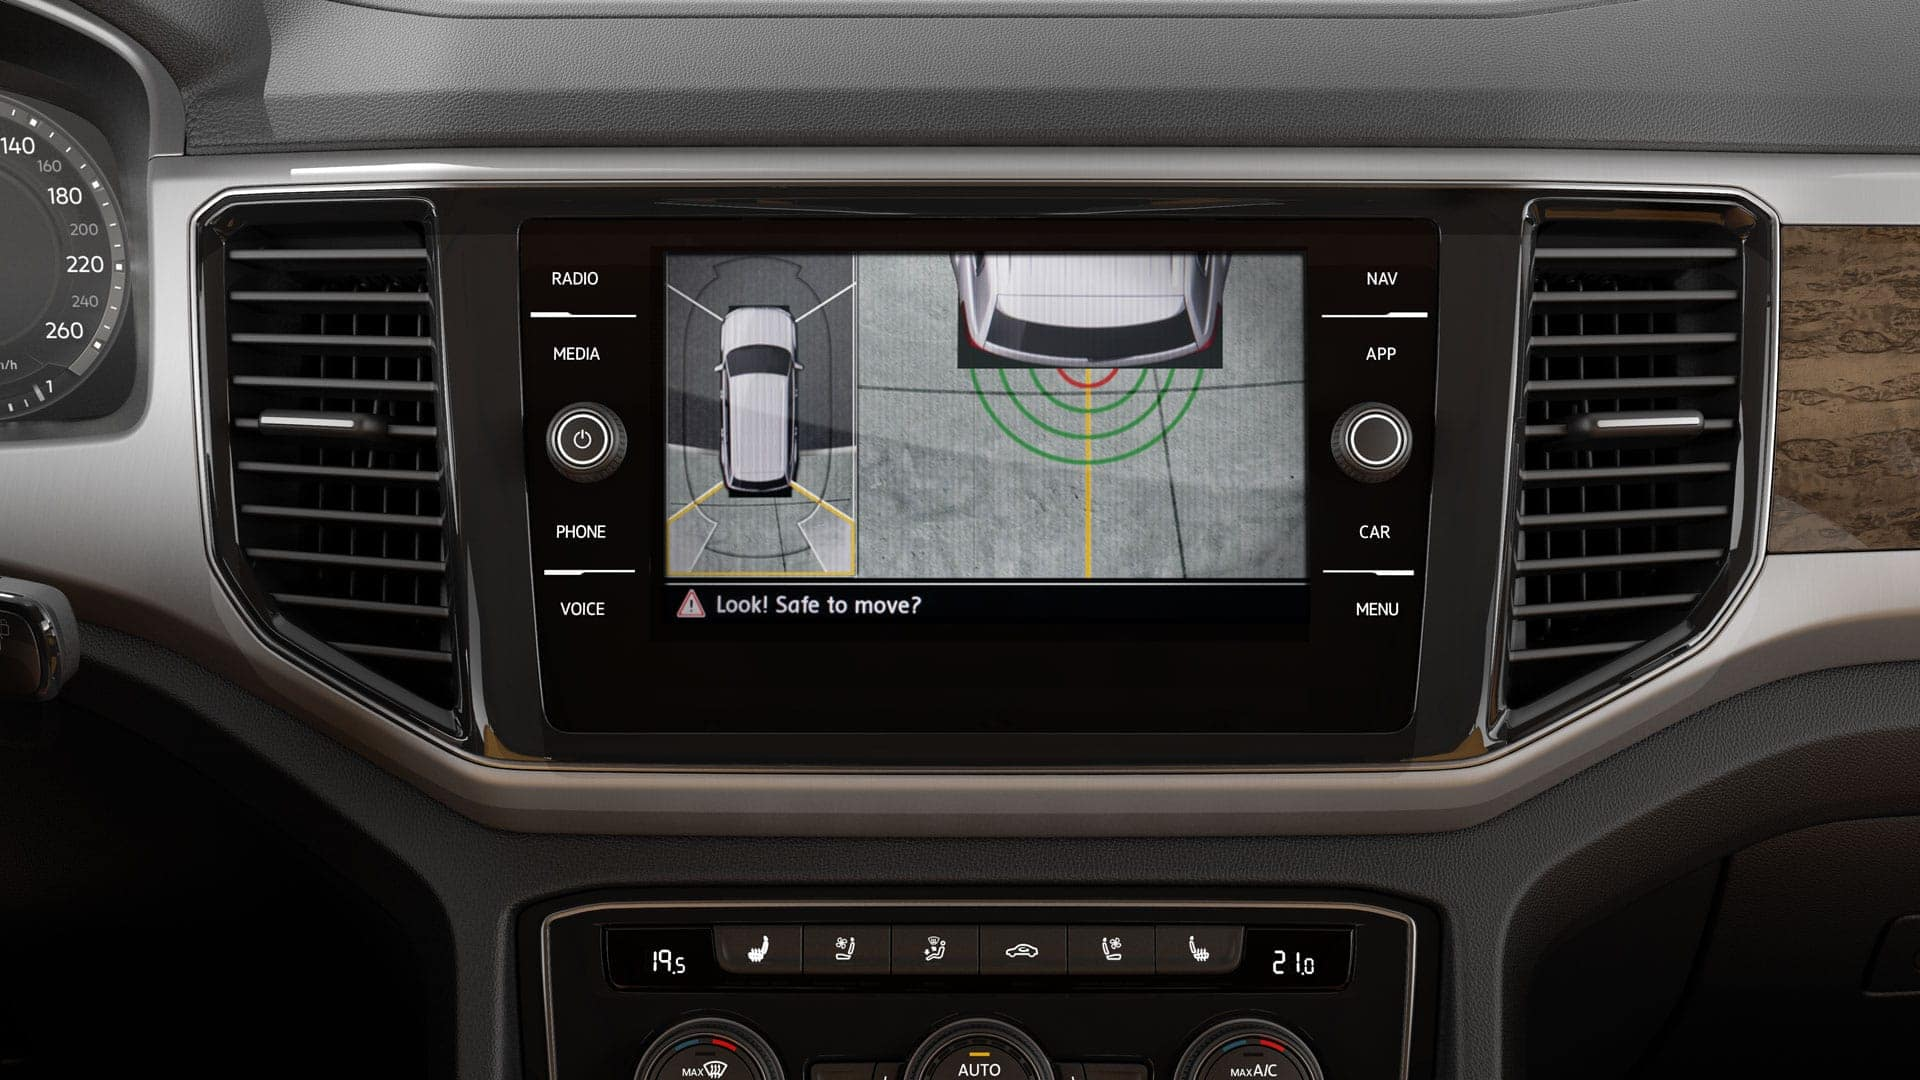 Touchscreen display showing 360 view